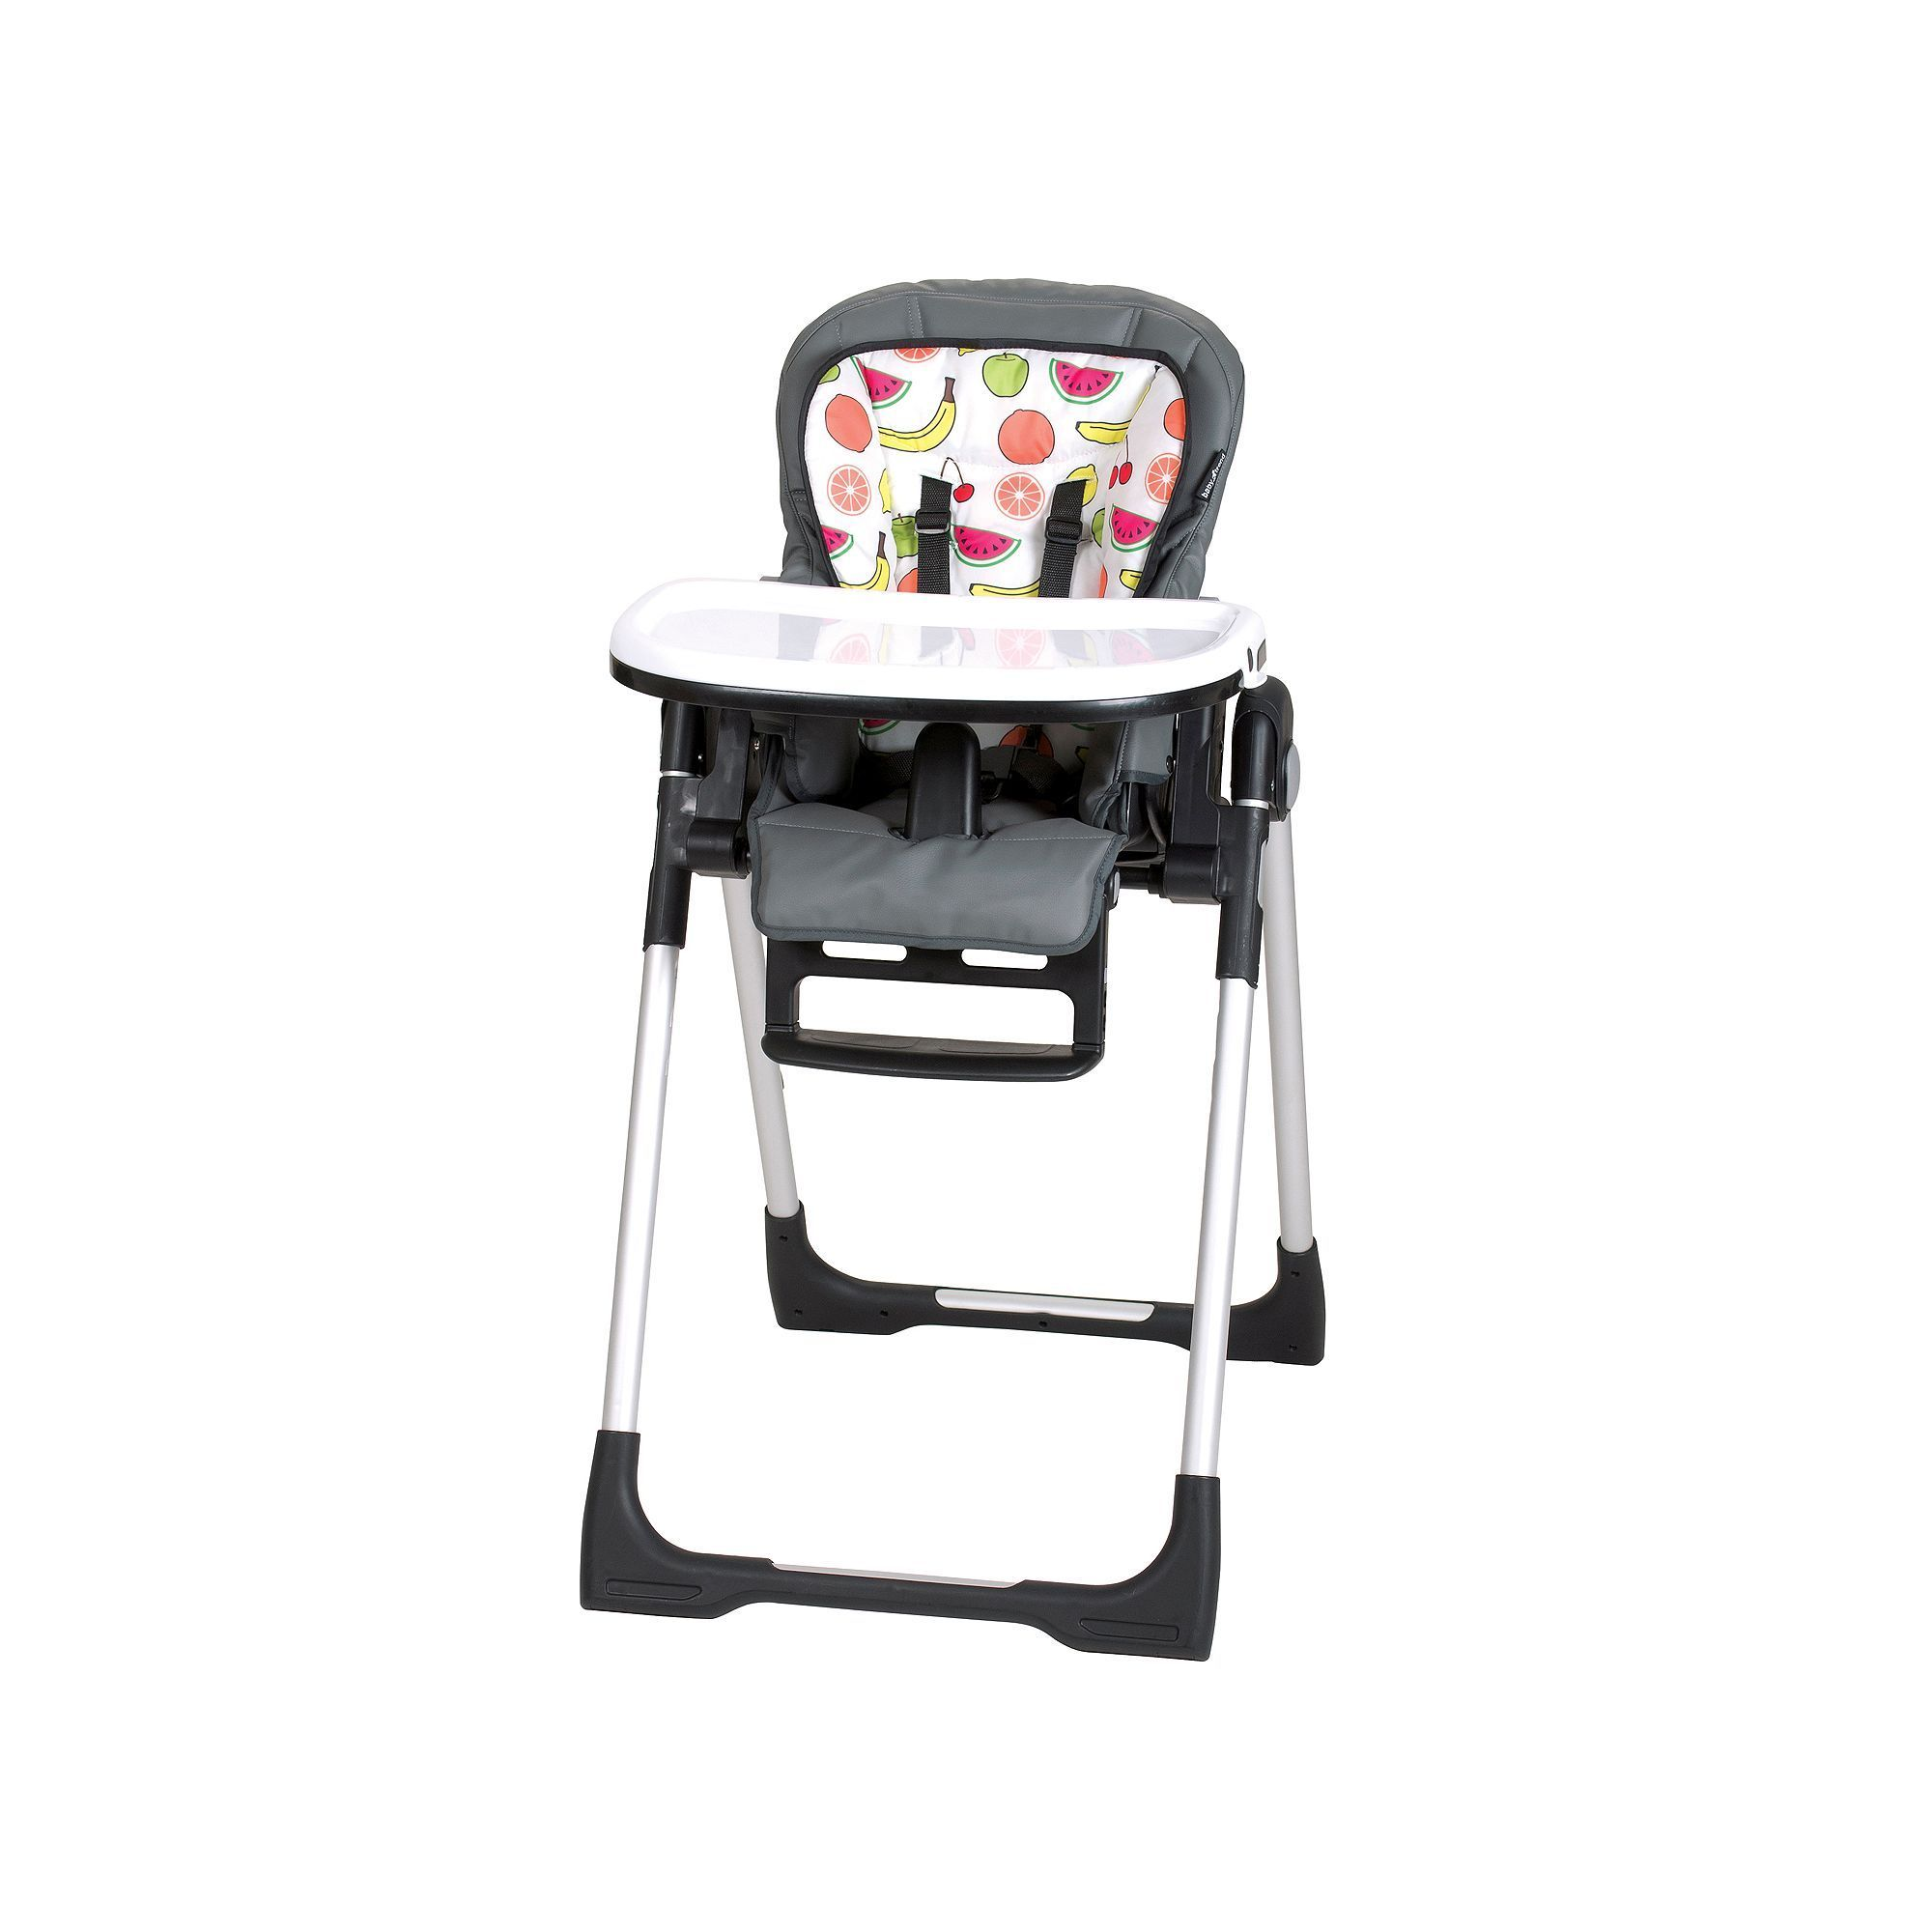 Baby Trend Deluxe Aluminum Fruit High Chair Chair Seat Pads